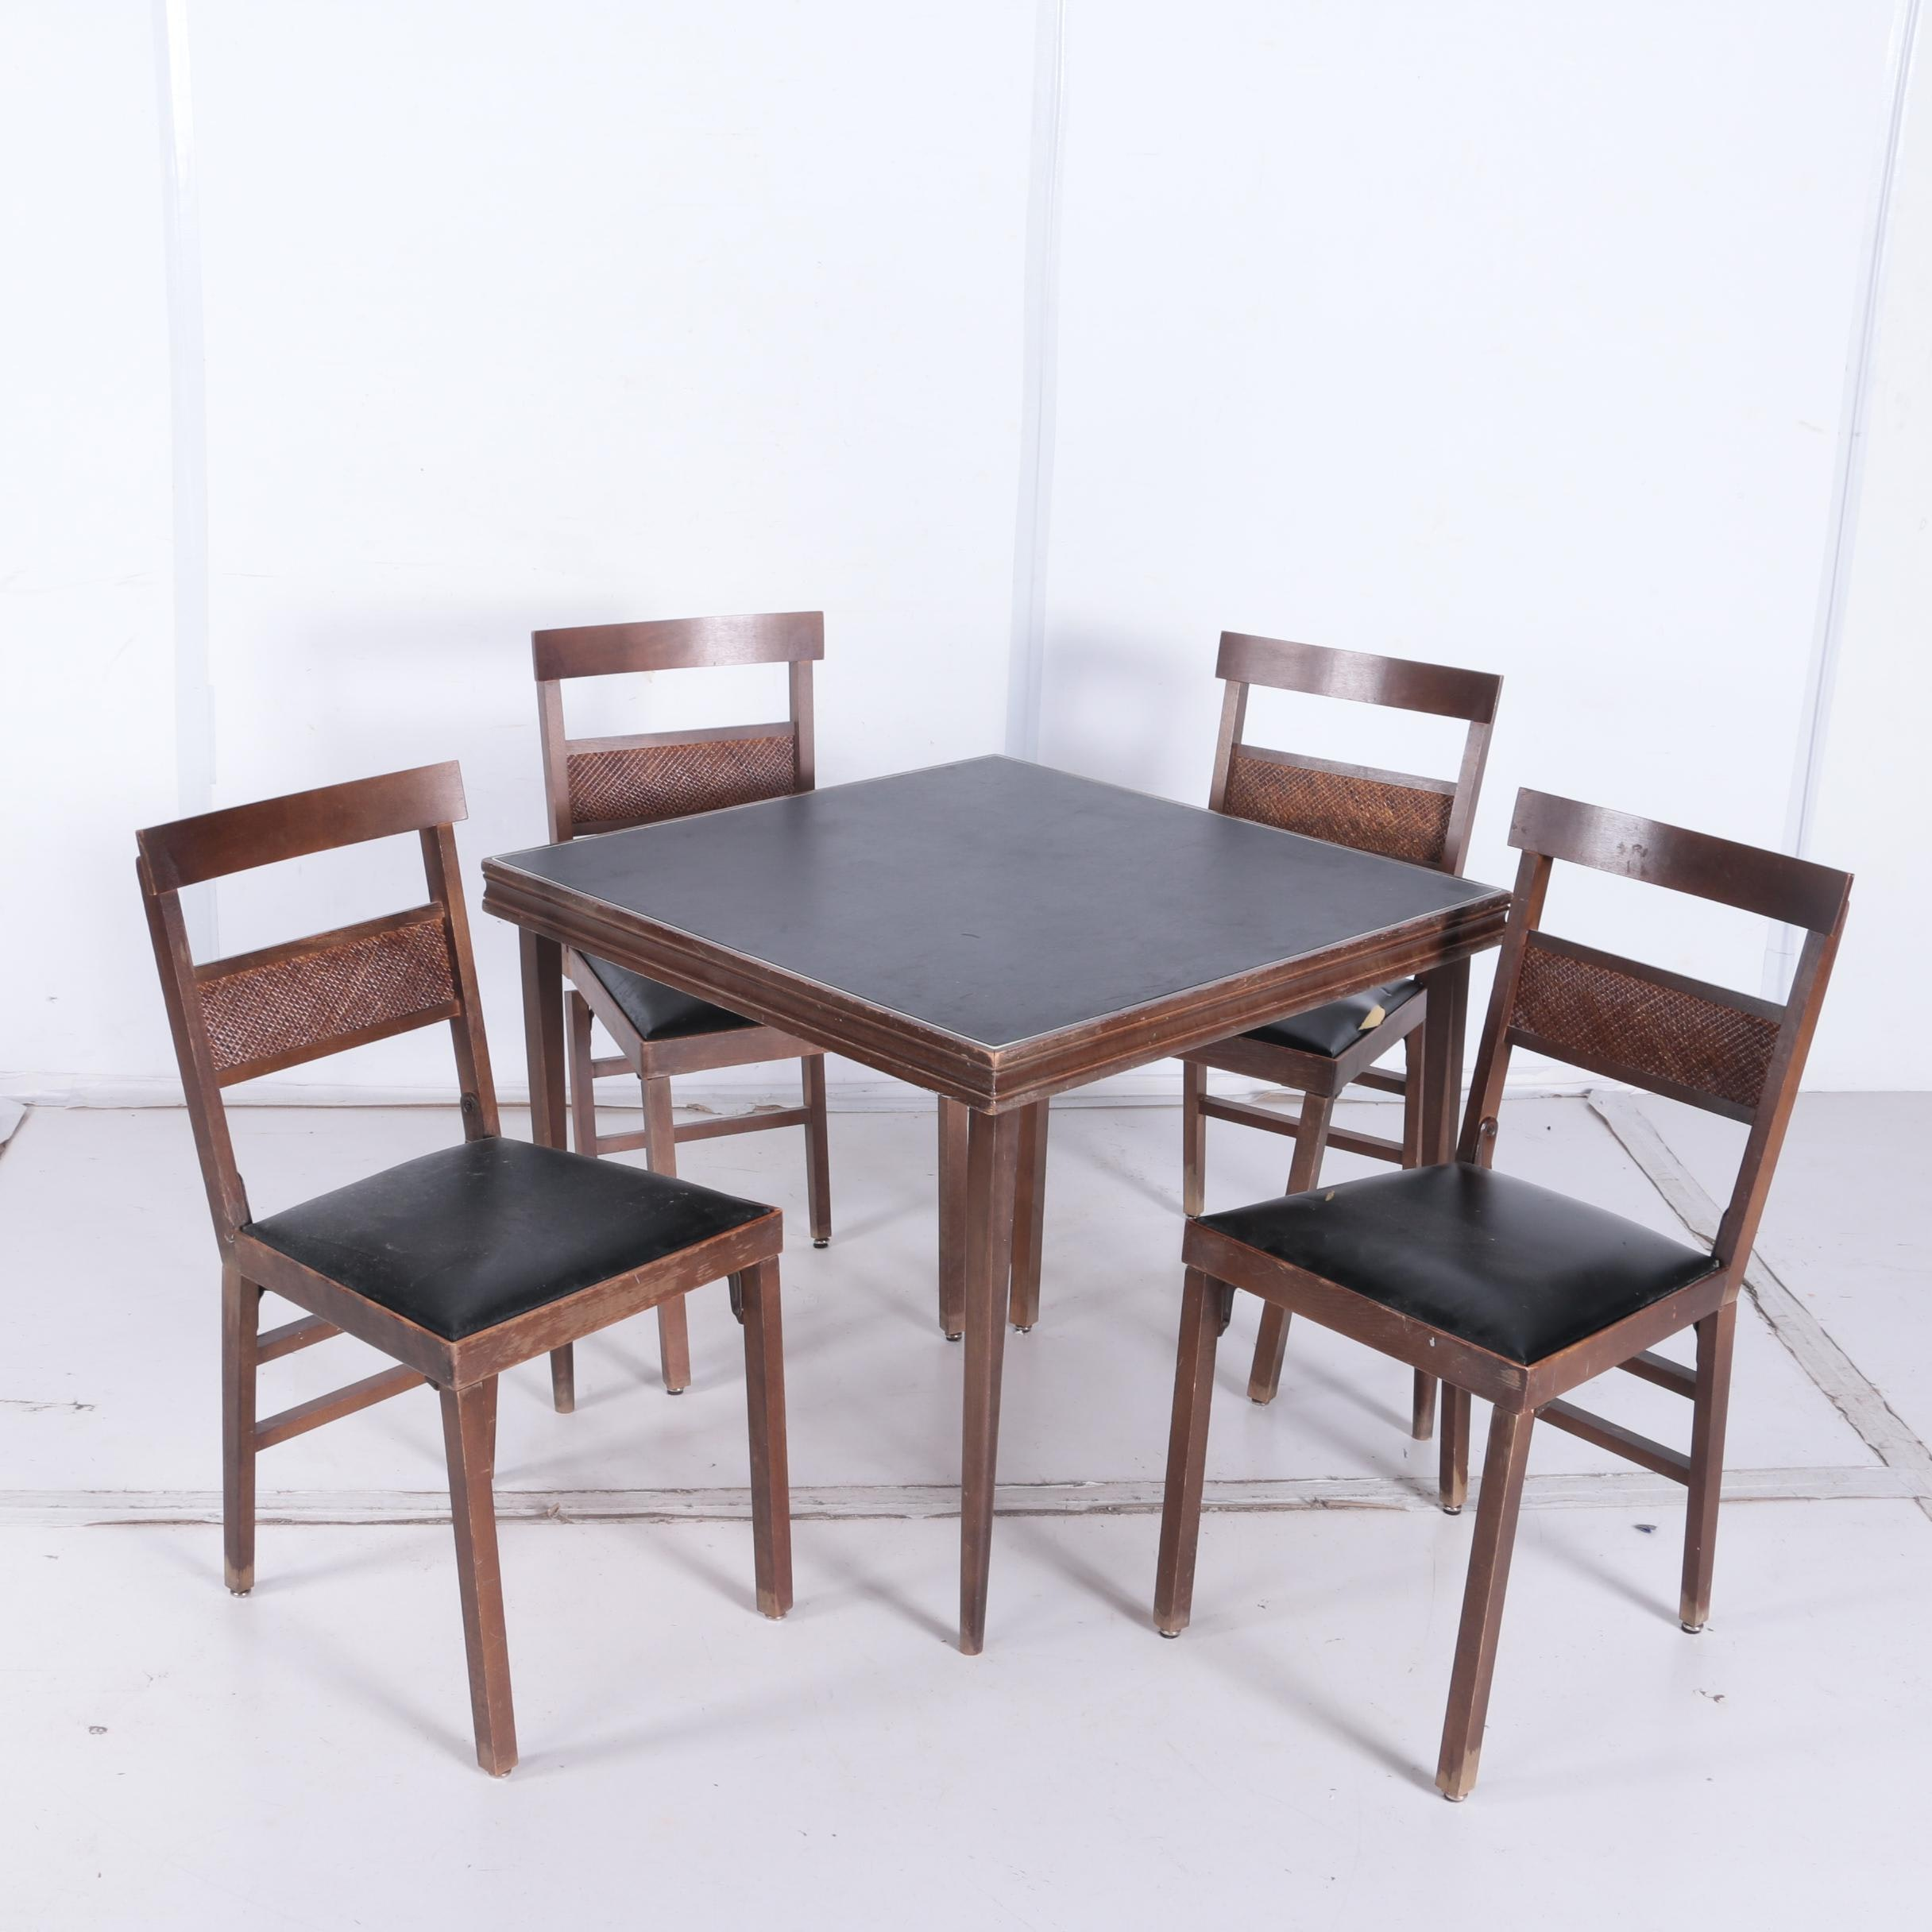 Mid-Century Folding Table and Chairs by Lorraine Industries